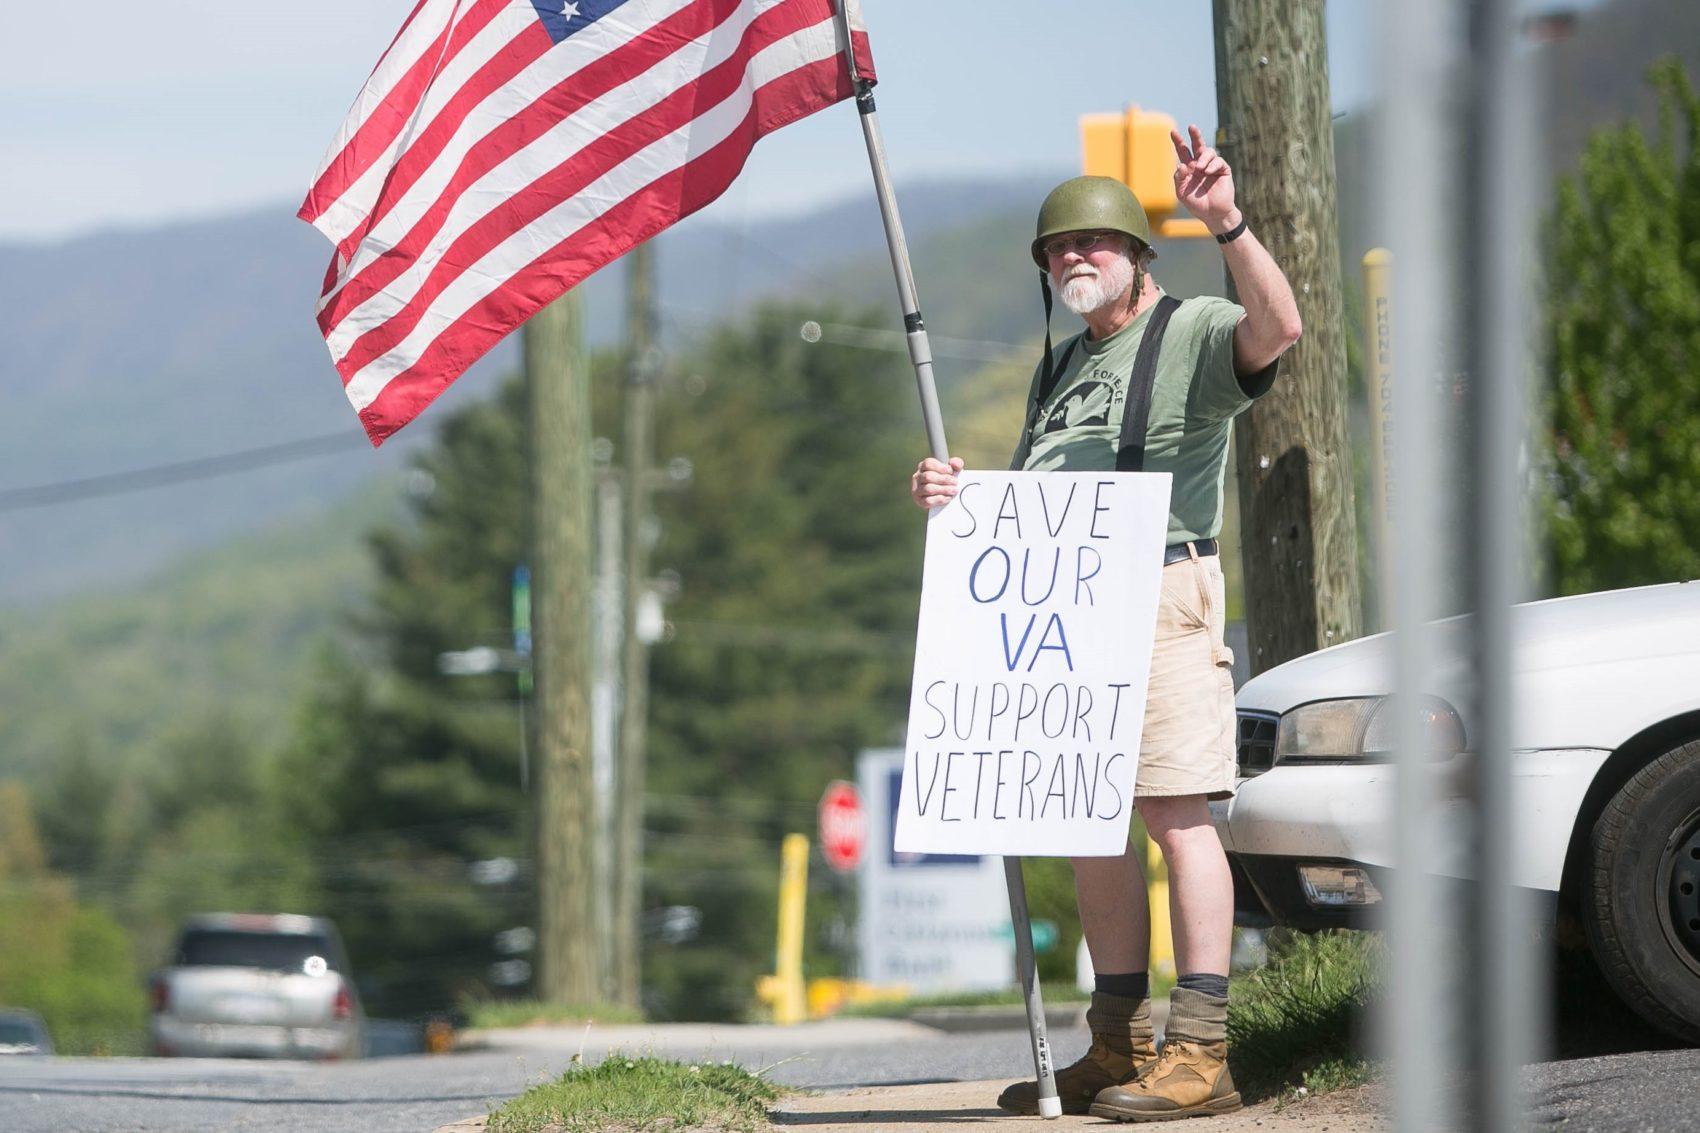 Vietnam veteran Bob Feldman protests against proposed changes to the VA